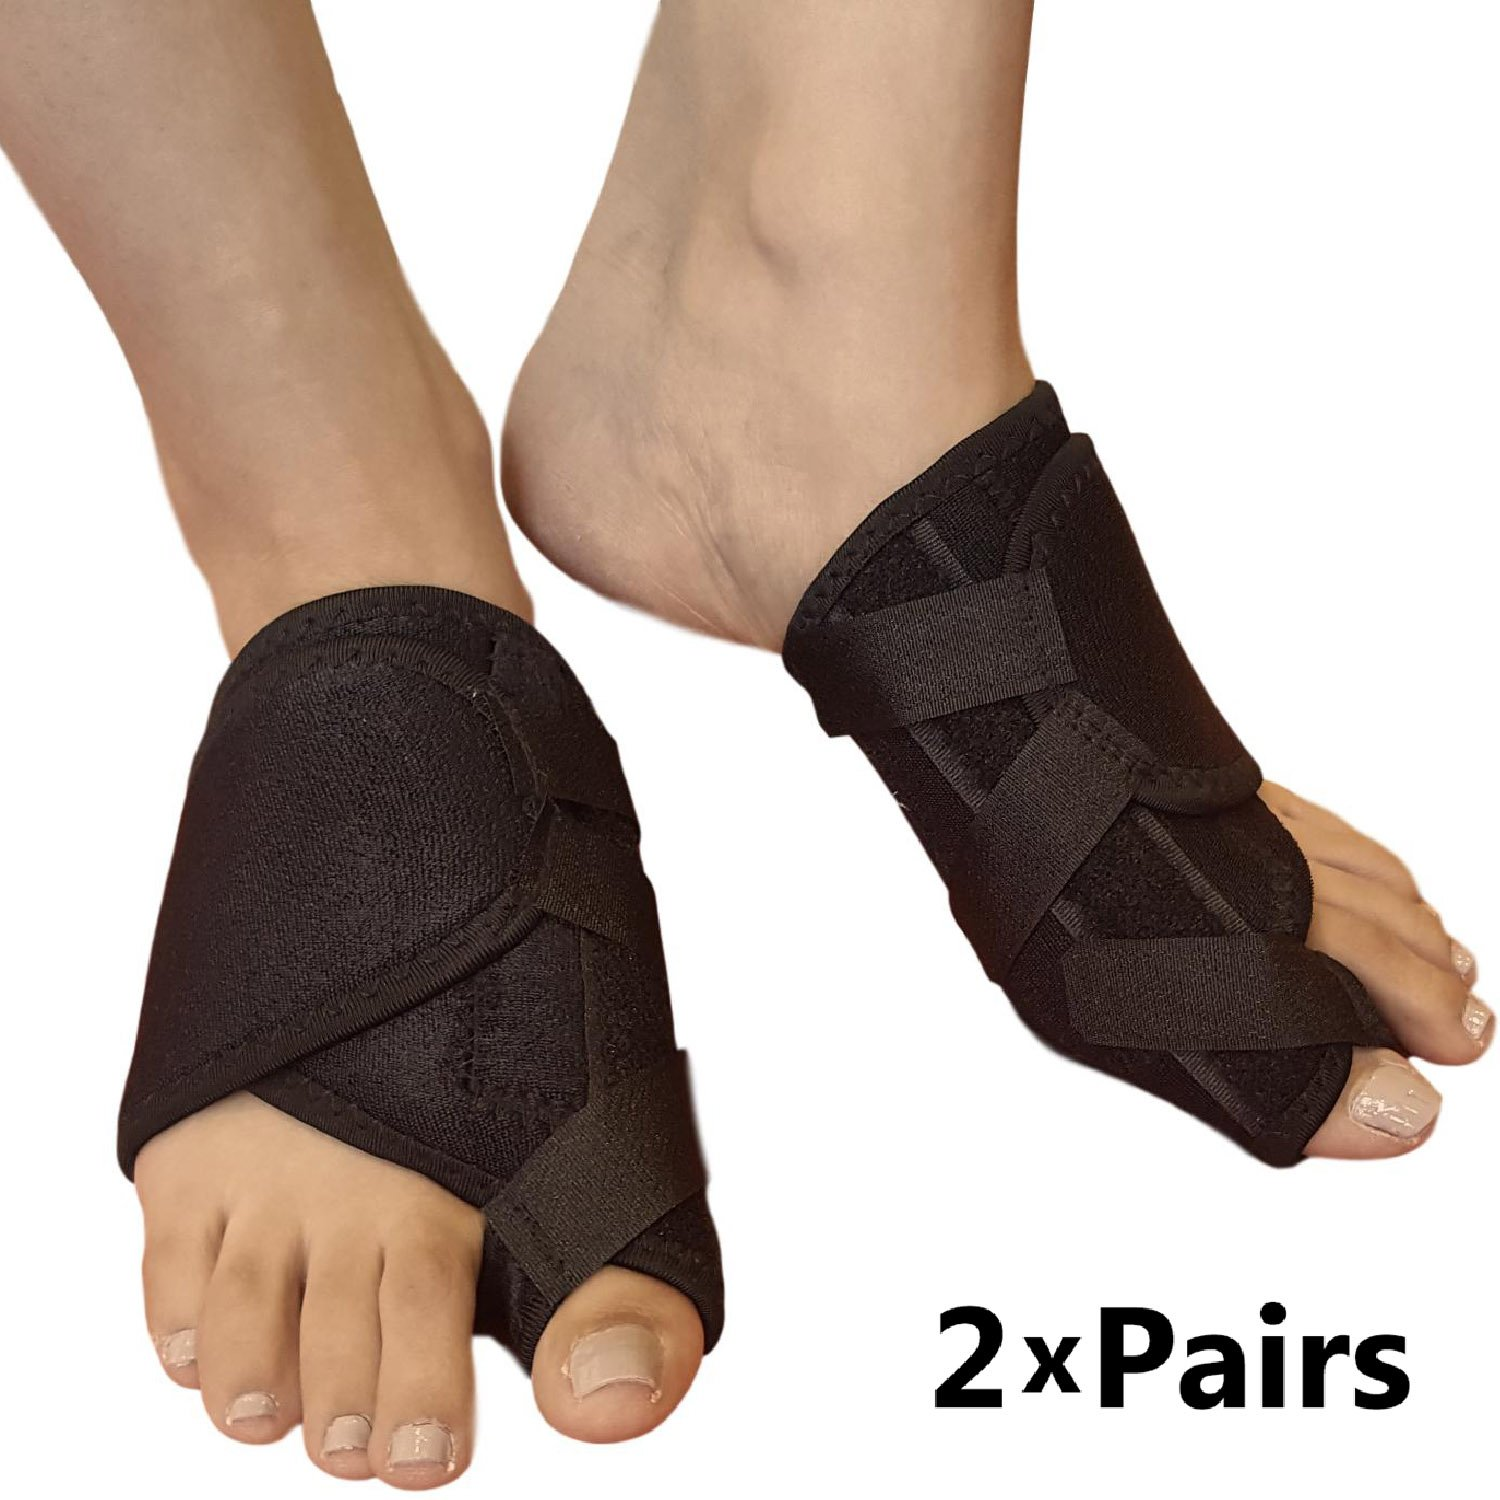 Bunion Corrector Toe Straightener - Bunion Brace For Big Toes or Tailors Bunions. Ideal Hallux Valgus Orthopedic Brace & Toe Separator for Foot Pain Relief. Foot Splint for Day or Night Time (2 Pairs) by ARMSTRONG AMERIKA